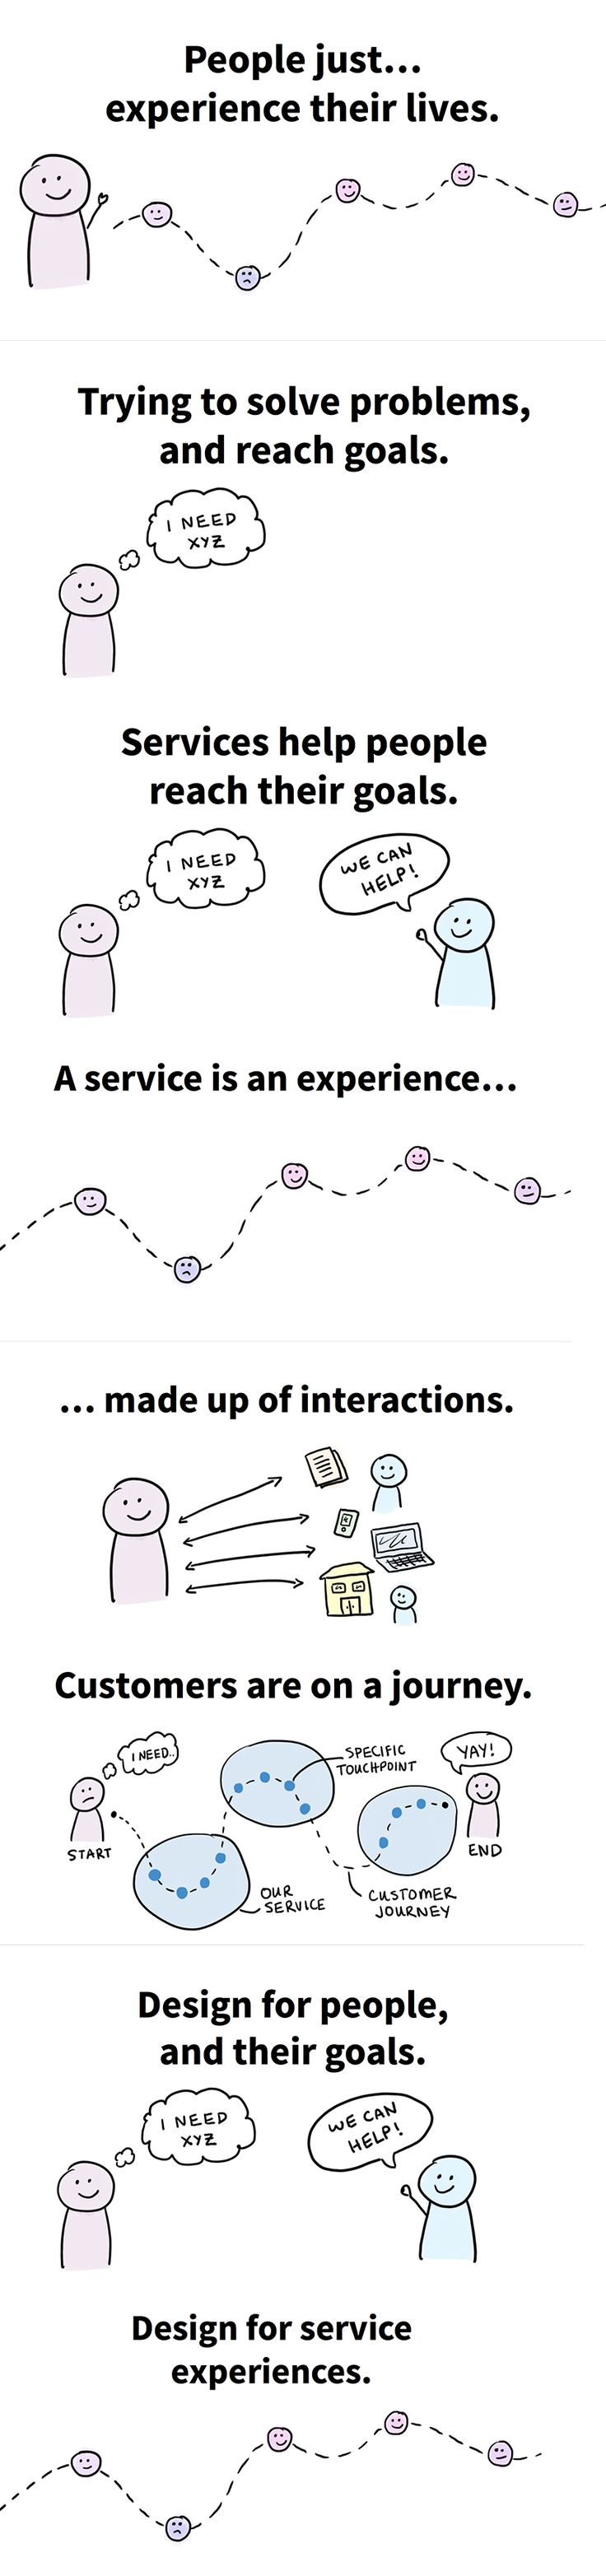 https://blog.practicalservicedesign.com/what-is-a-service-experience-explained-through-drawings-e3f2bef8f6bc#.jgljadjlp